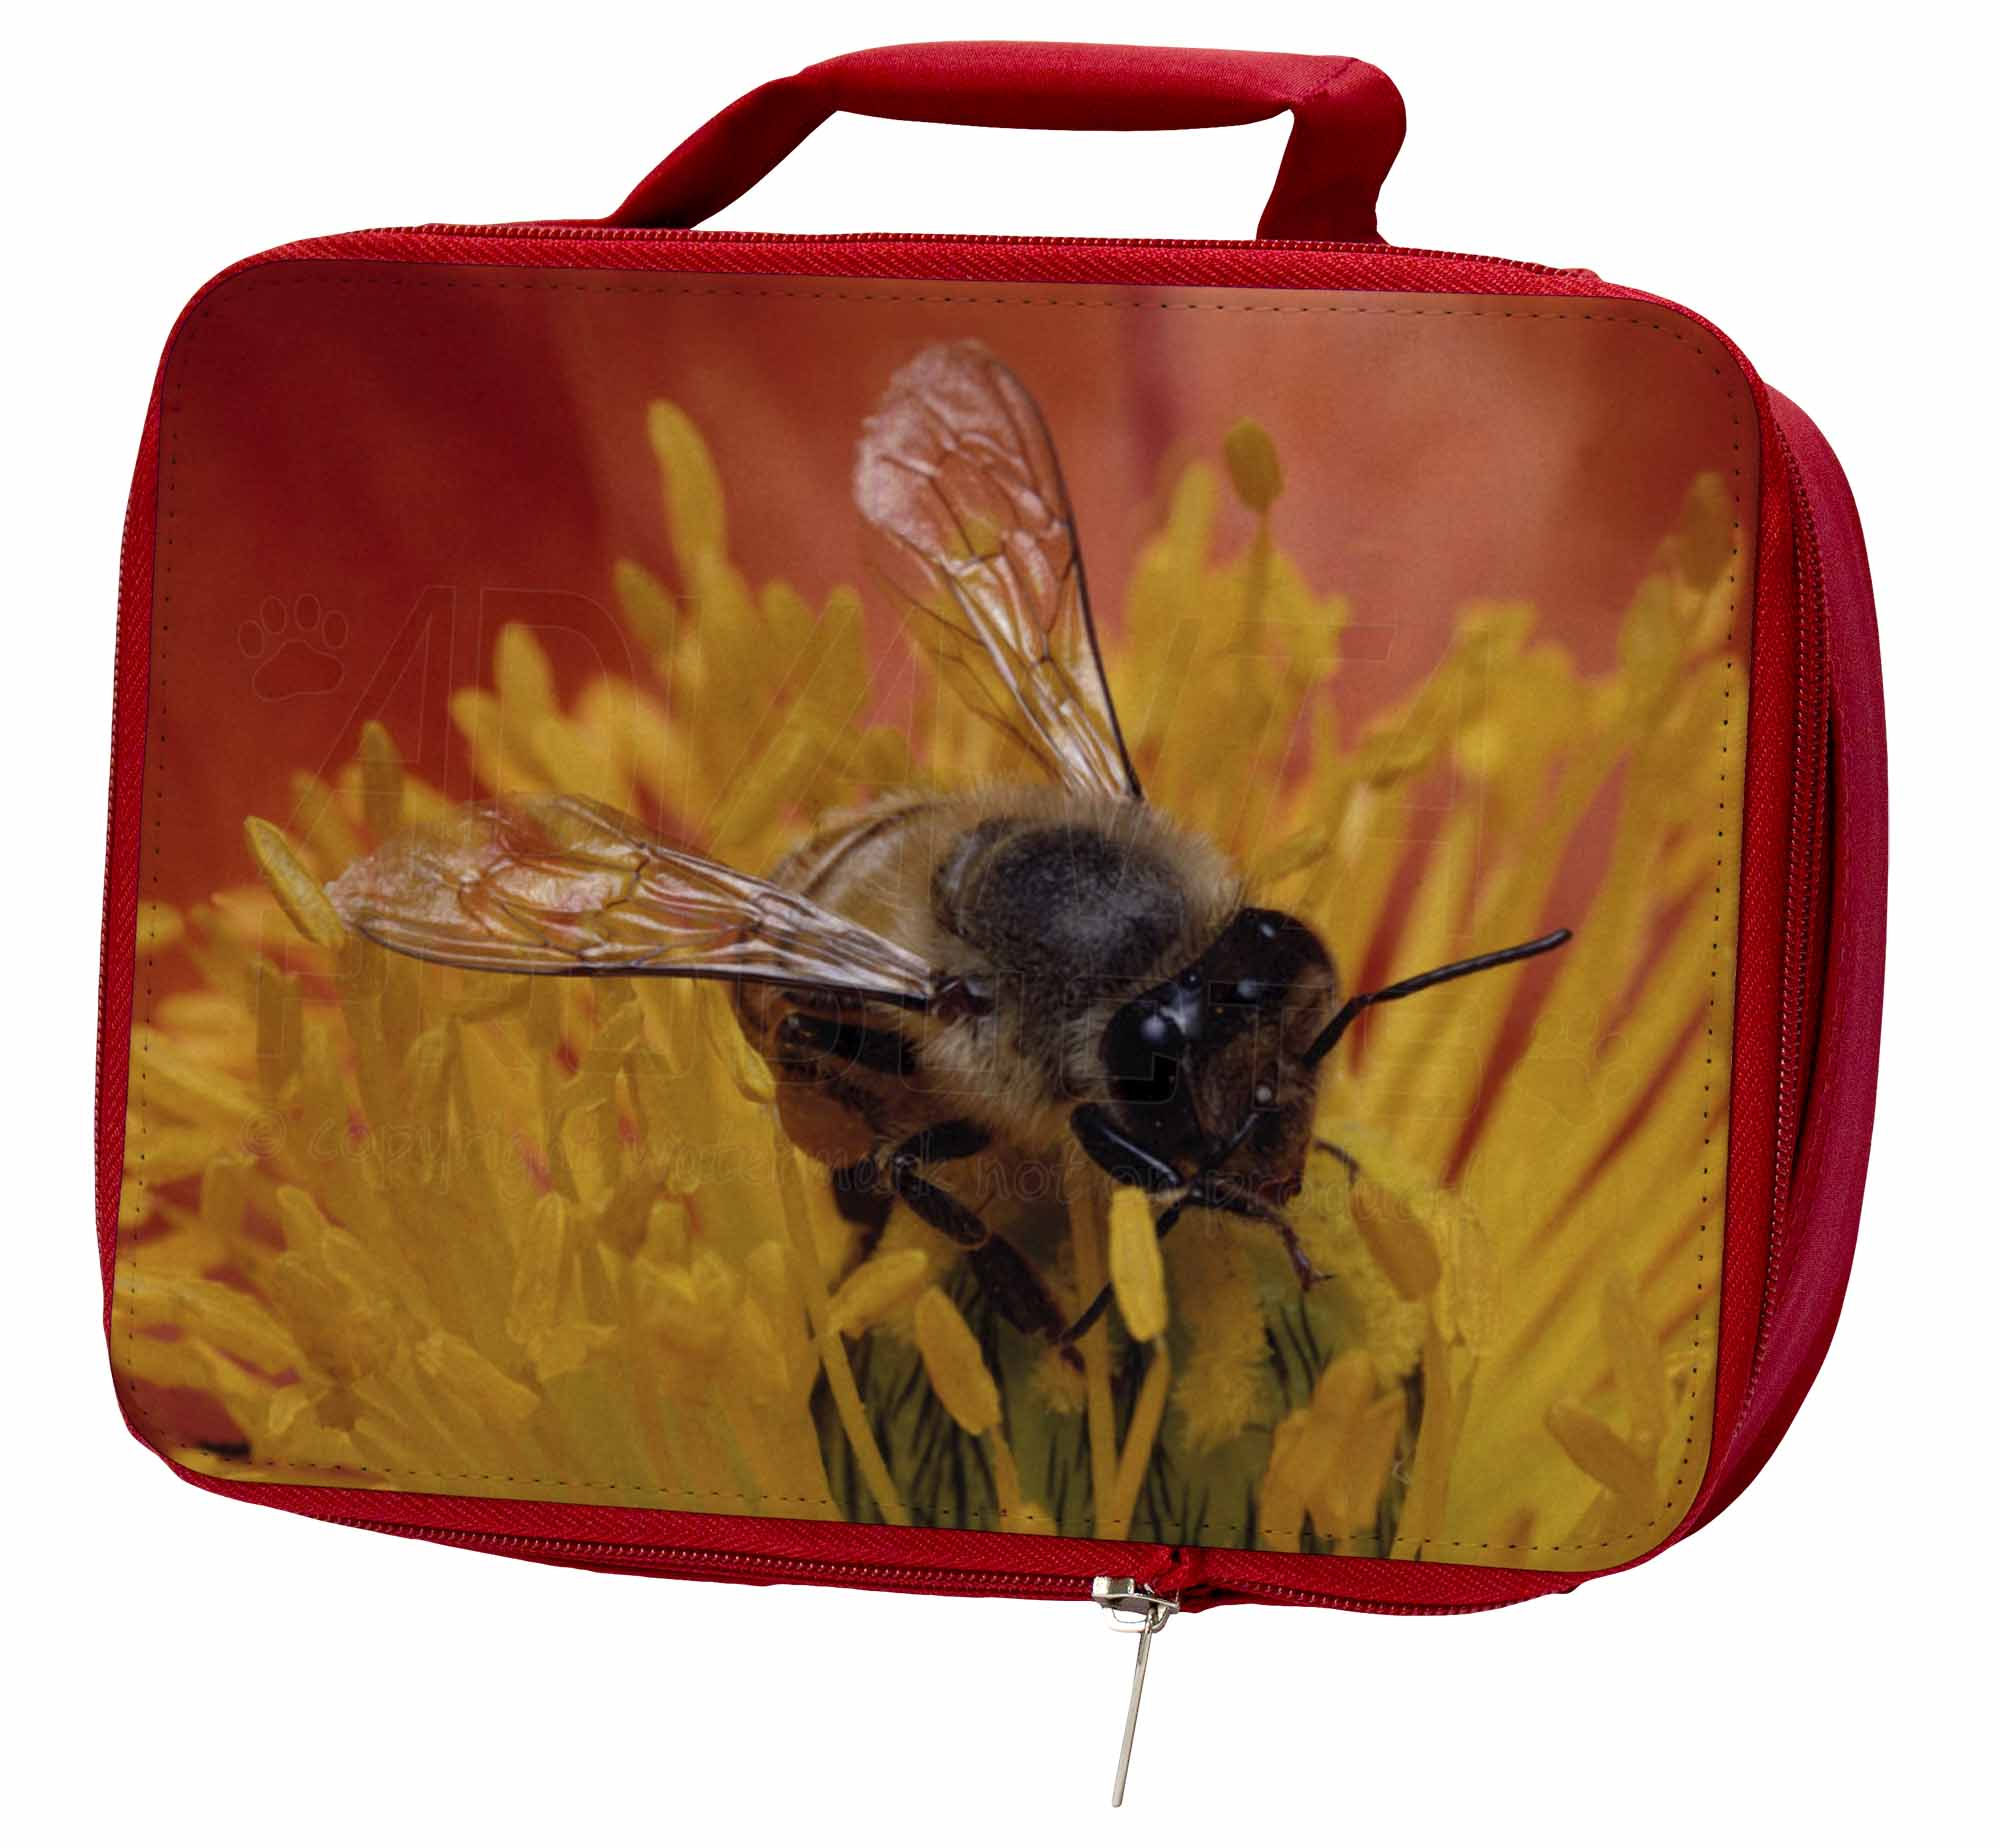 Honey Bee on Flower Insulated Red School Lunch IBE-1LBR Box/Picnic Bag, IBE-1LBR Lunch 55a185